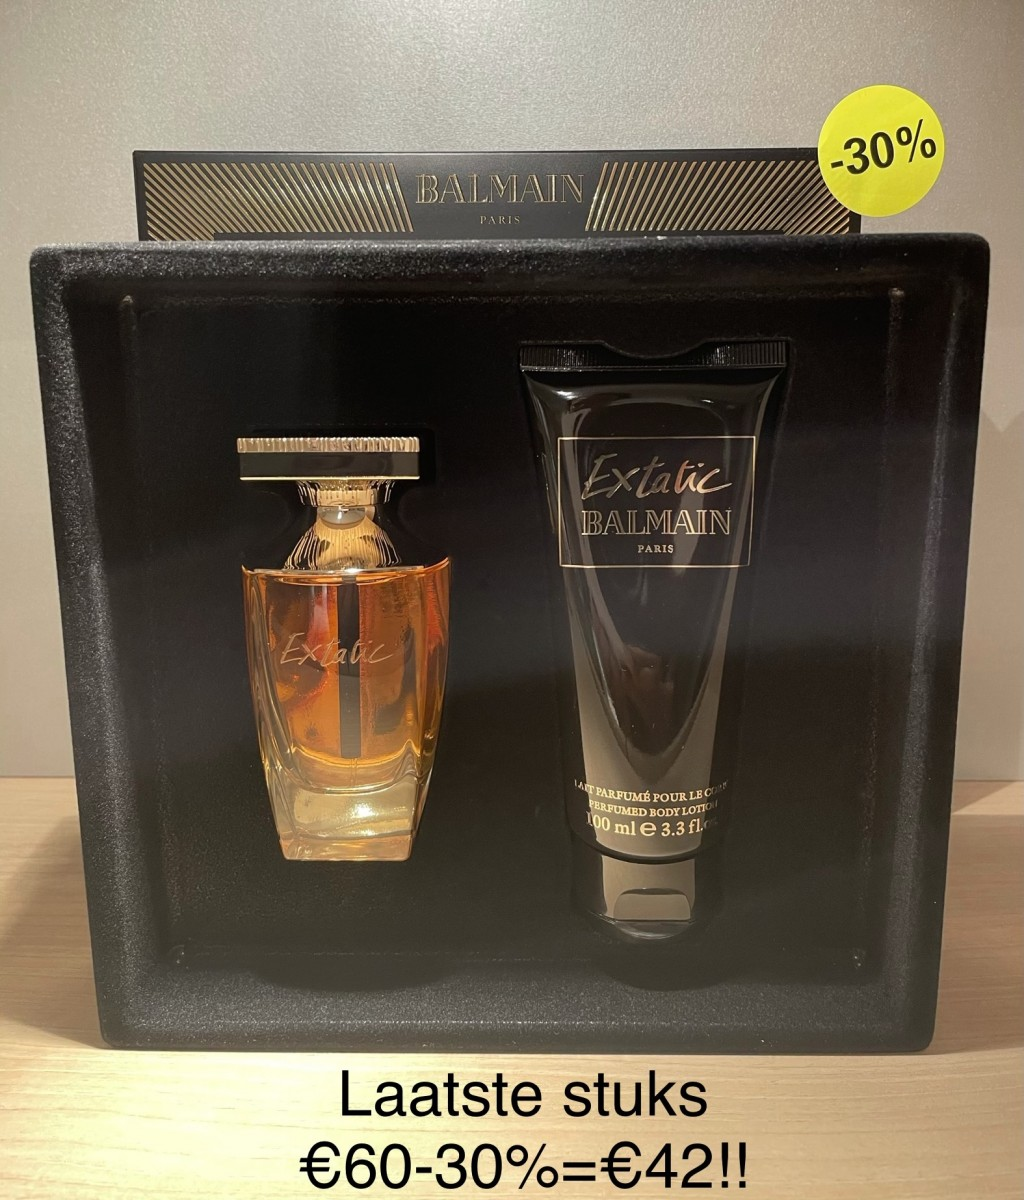 Extatic Balmain edp 60 ml